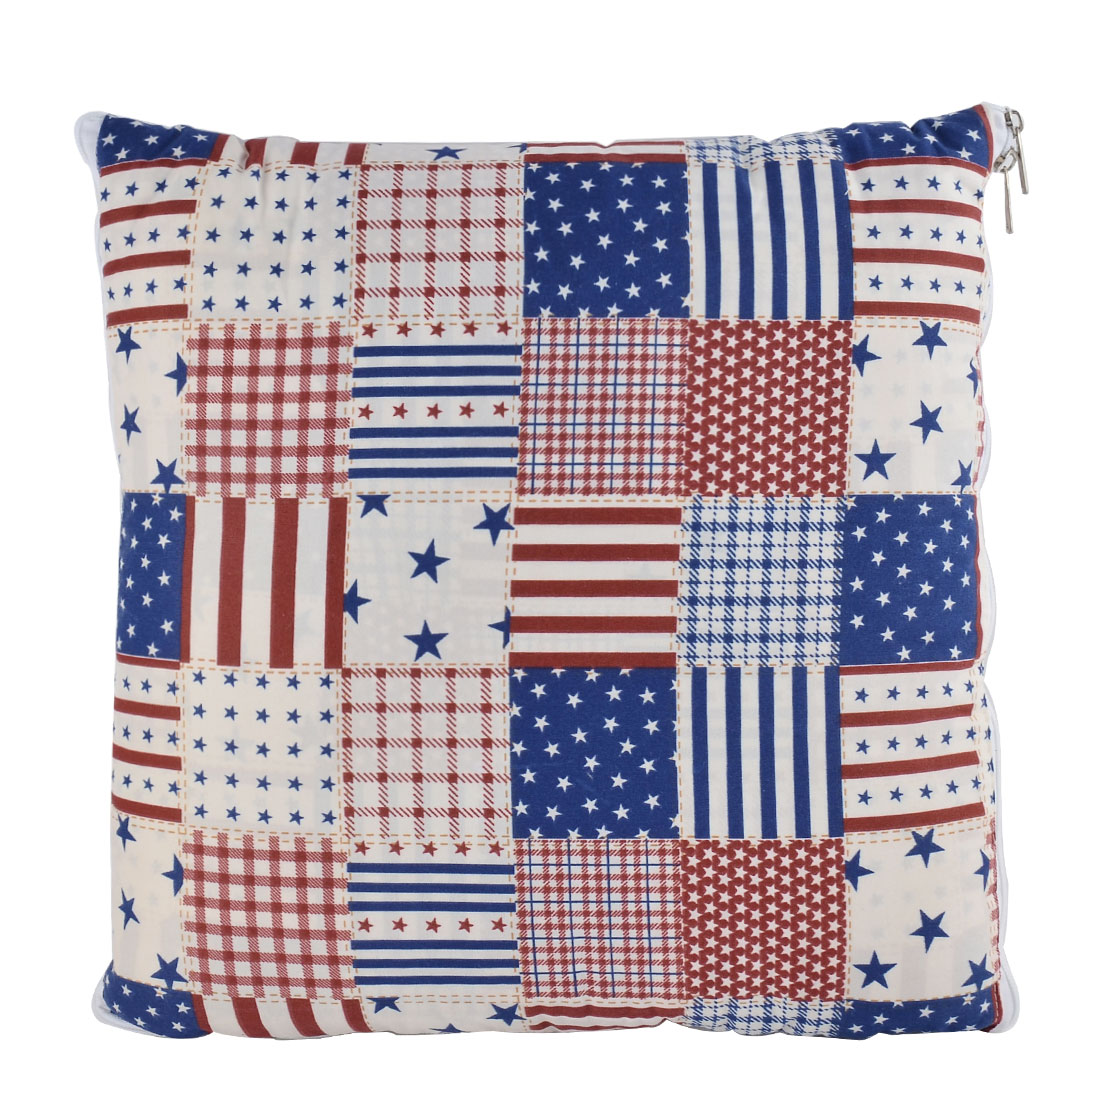 Home Office Car Cotton Blends Stars Print Zippered Pillow Cushion Quilt Dual 40 x 40cm